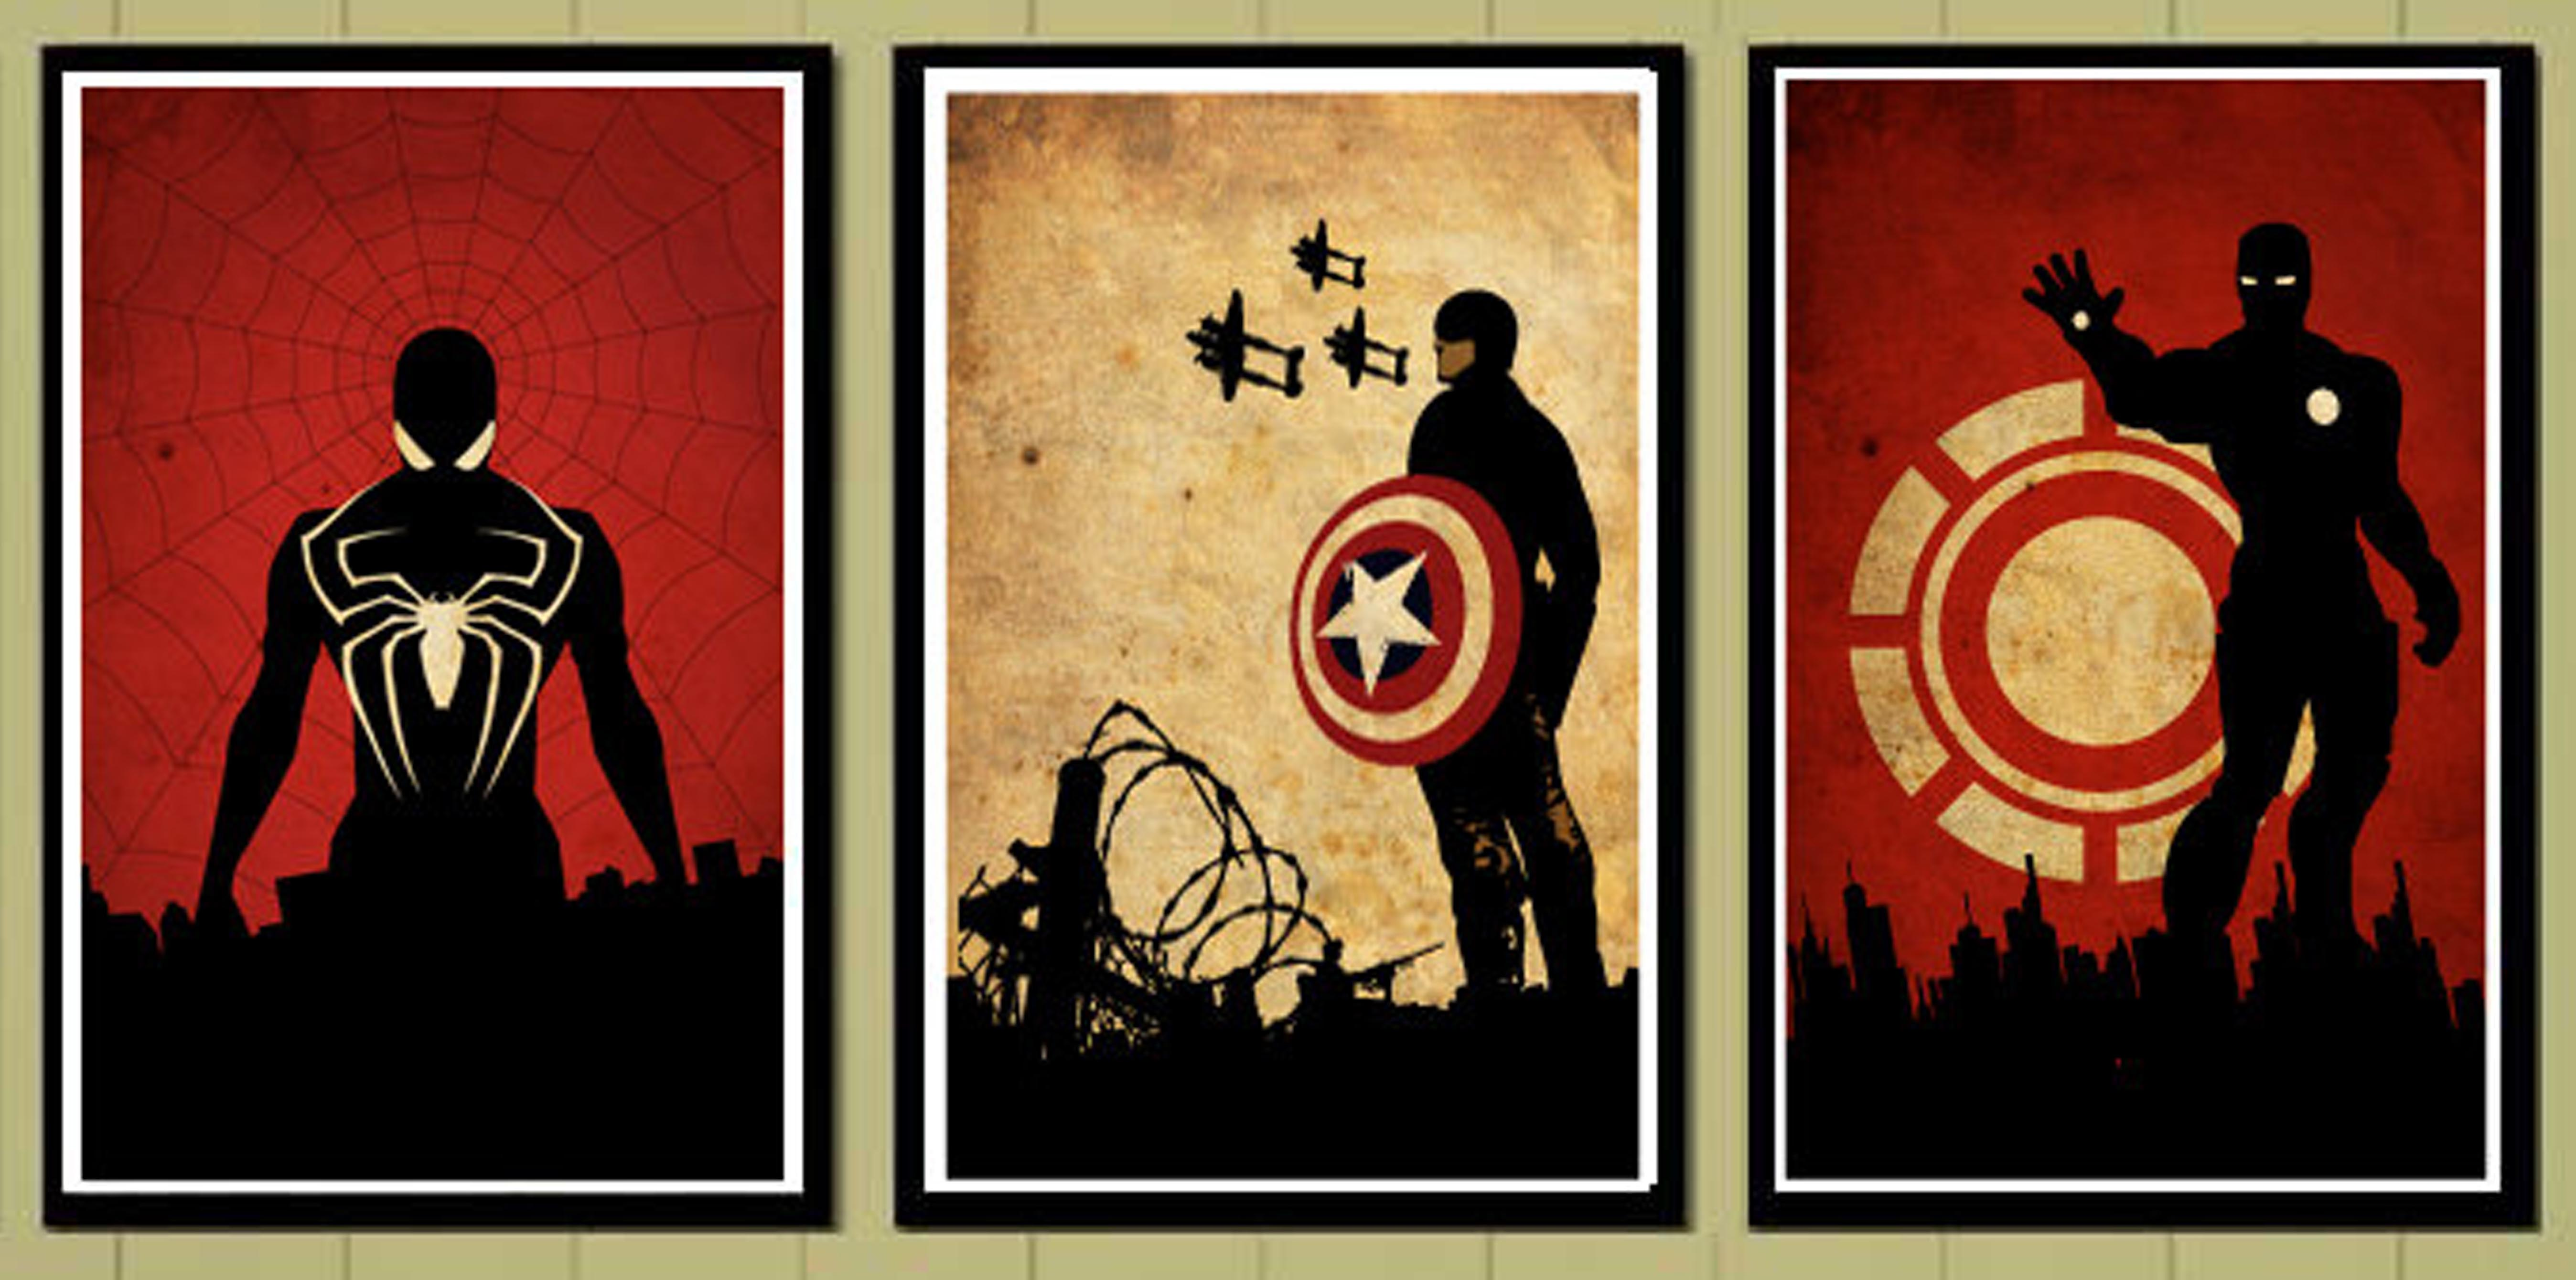 Marvel poster art socialpsychol for Posters art prints